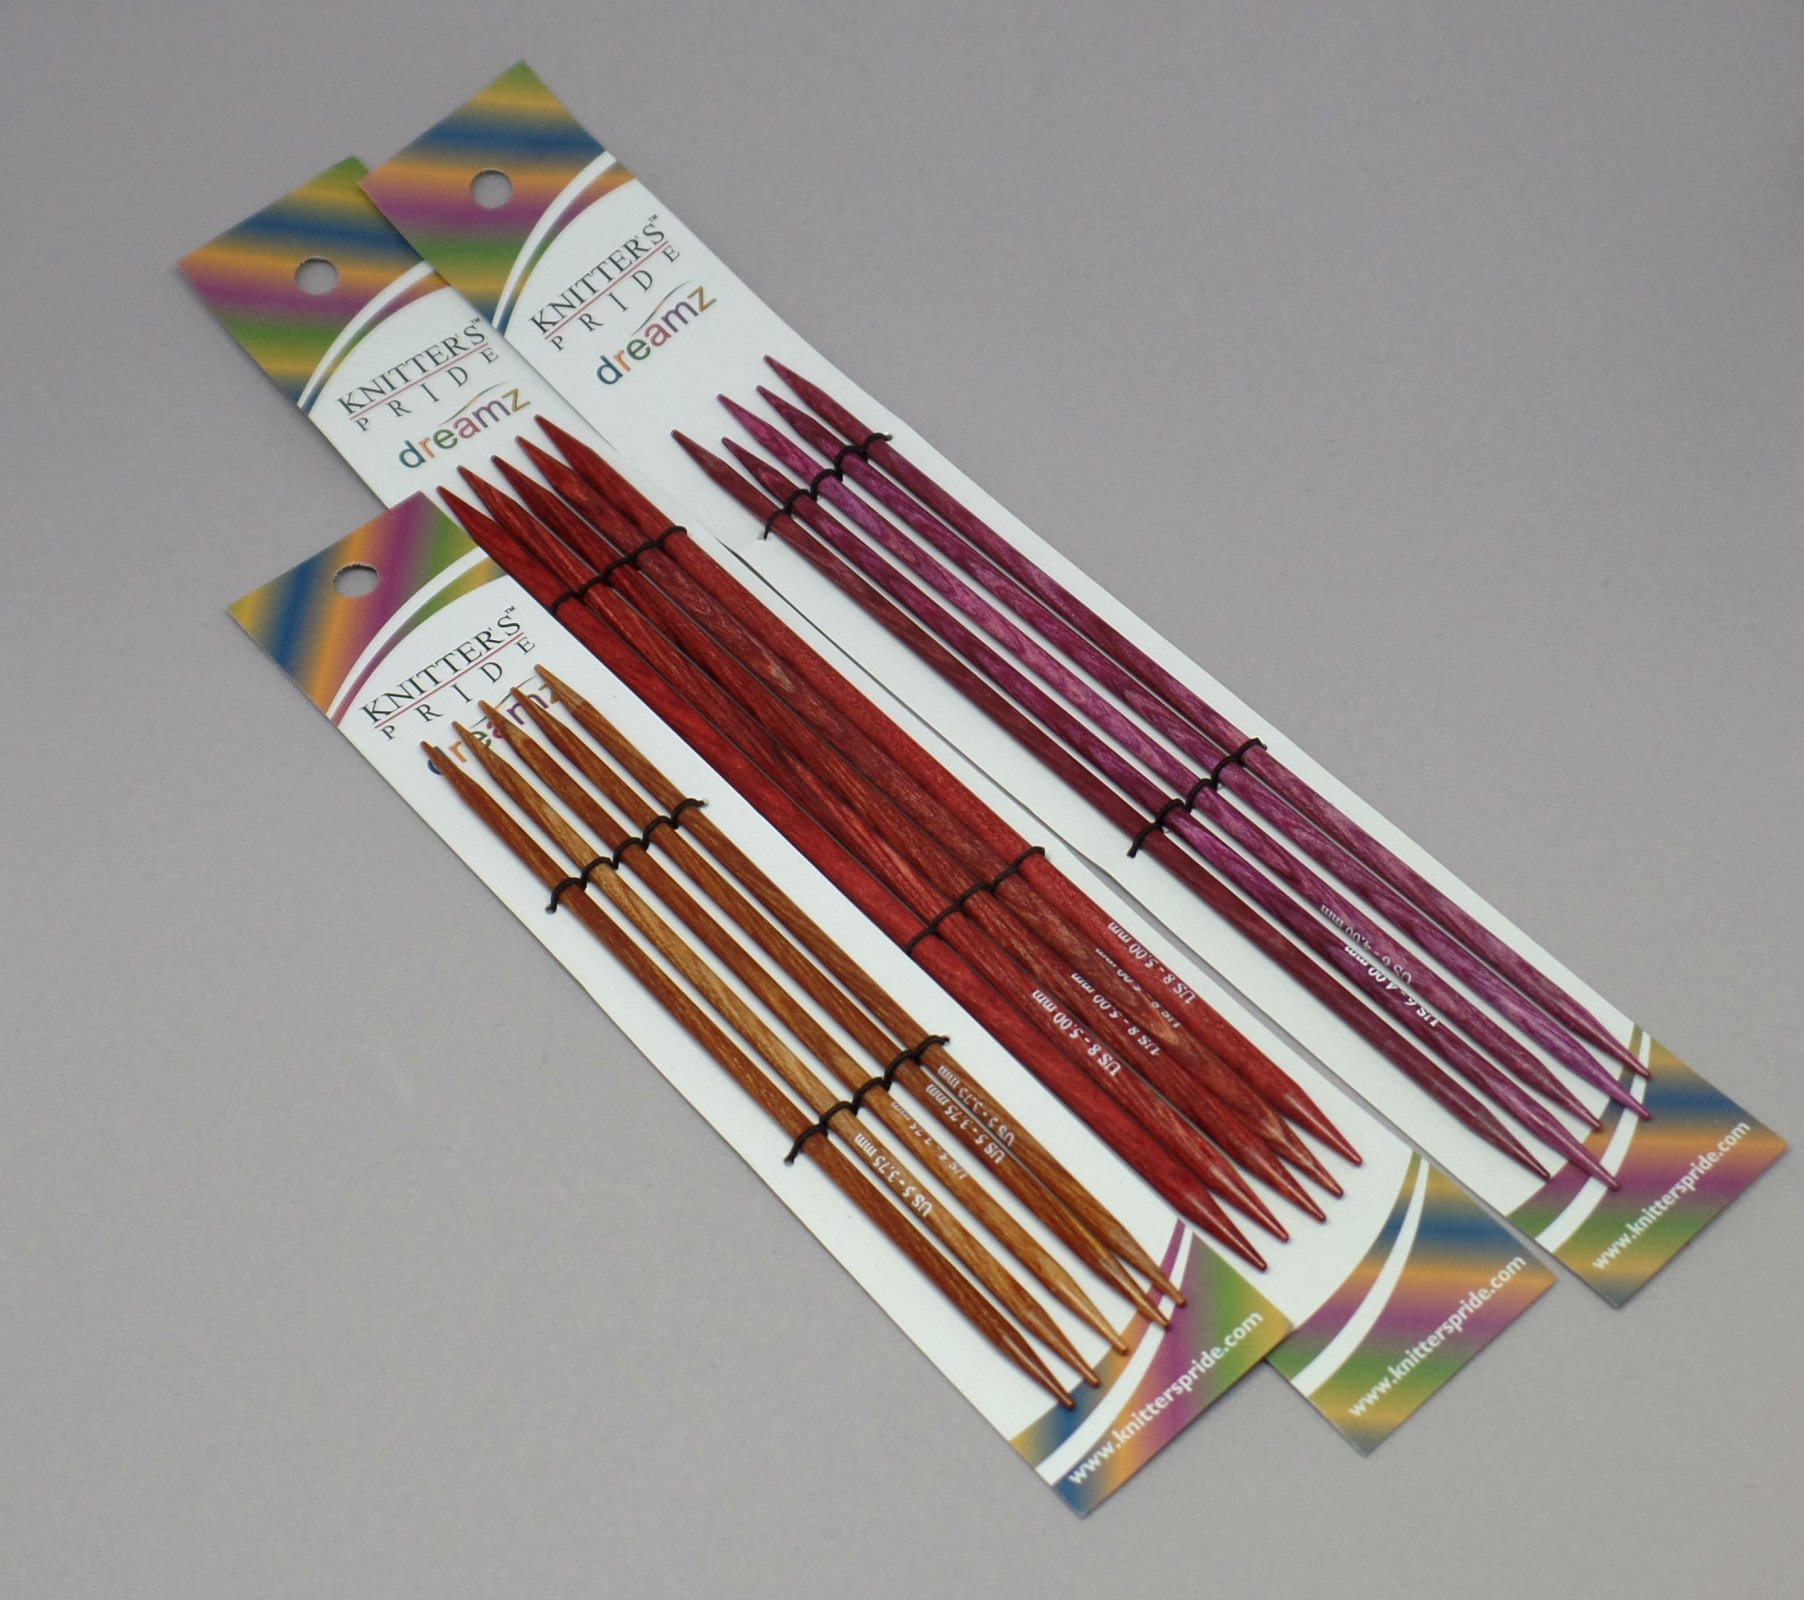 Knitter's Pride Symfonie Dreamz Double Pointed Needles